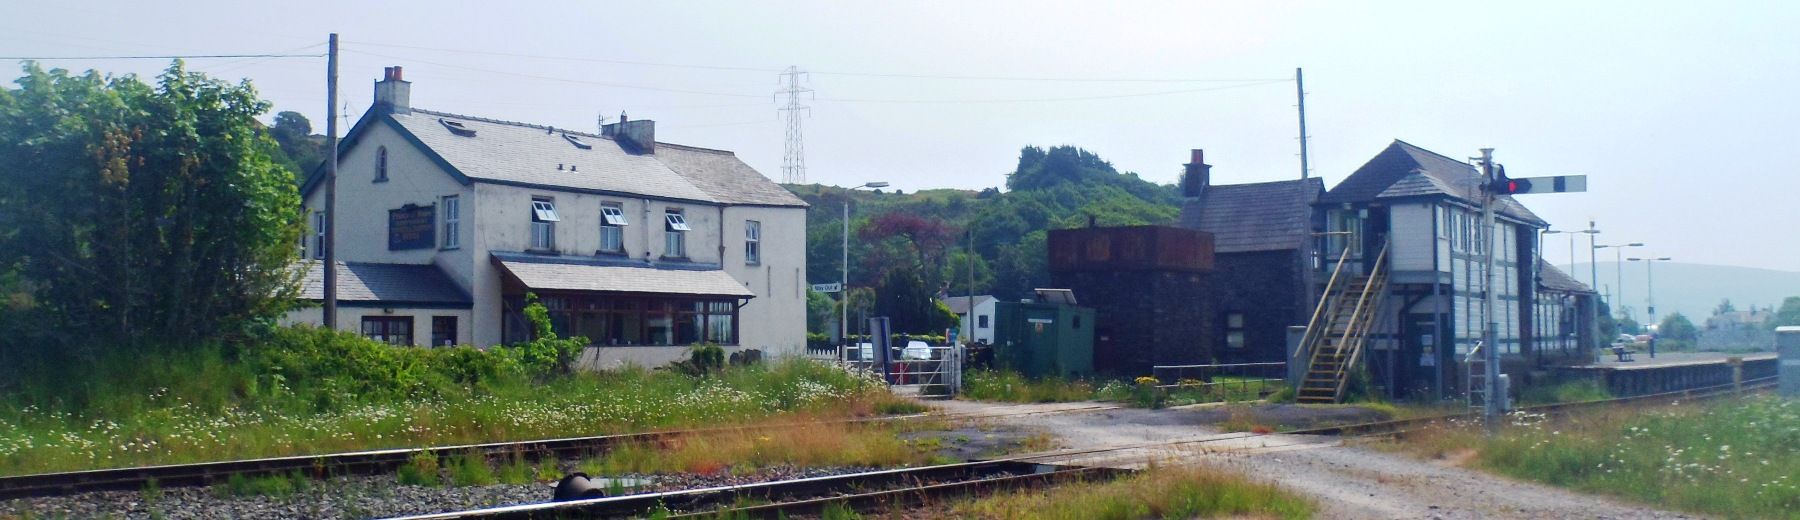 Photo looking accross from Foxfield station